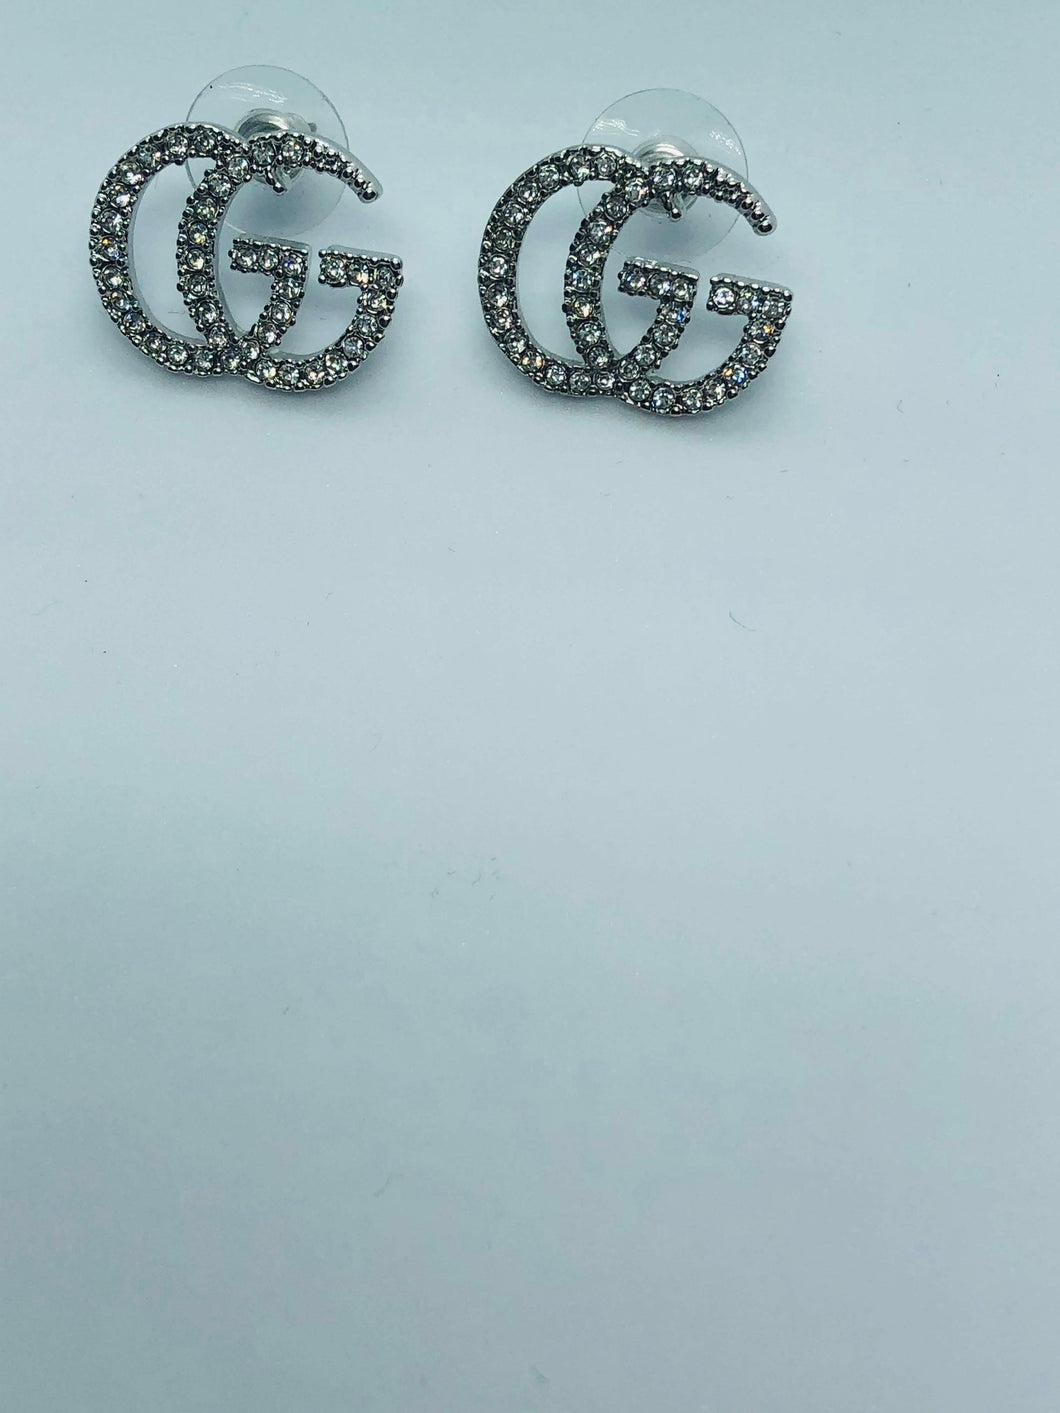 GUCCI EARRINGS - Hustla Boutique